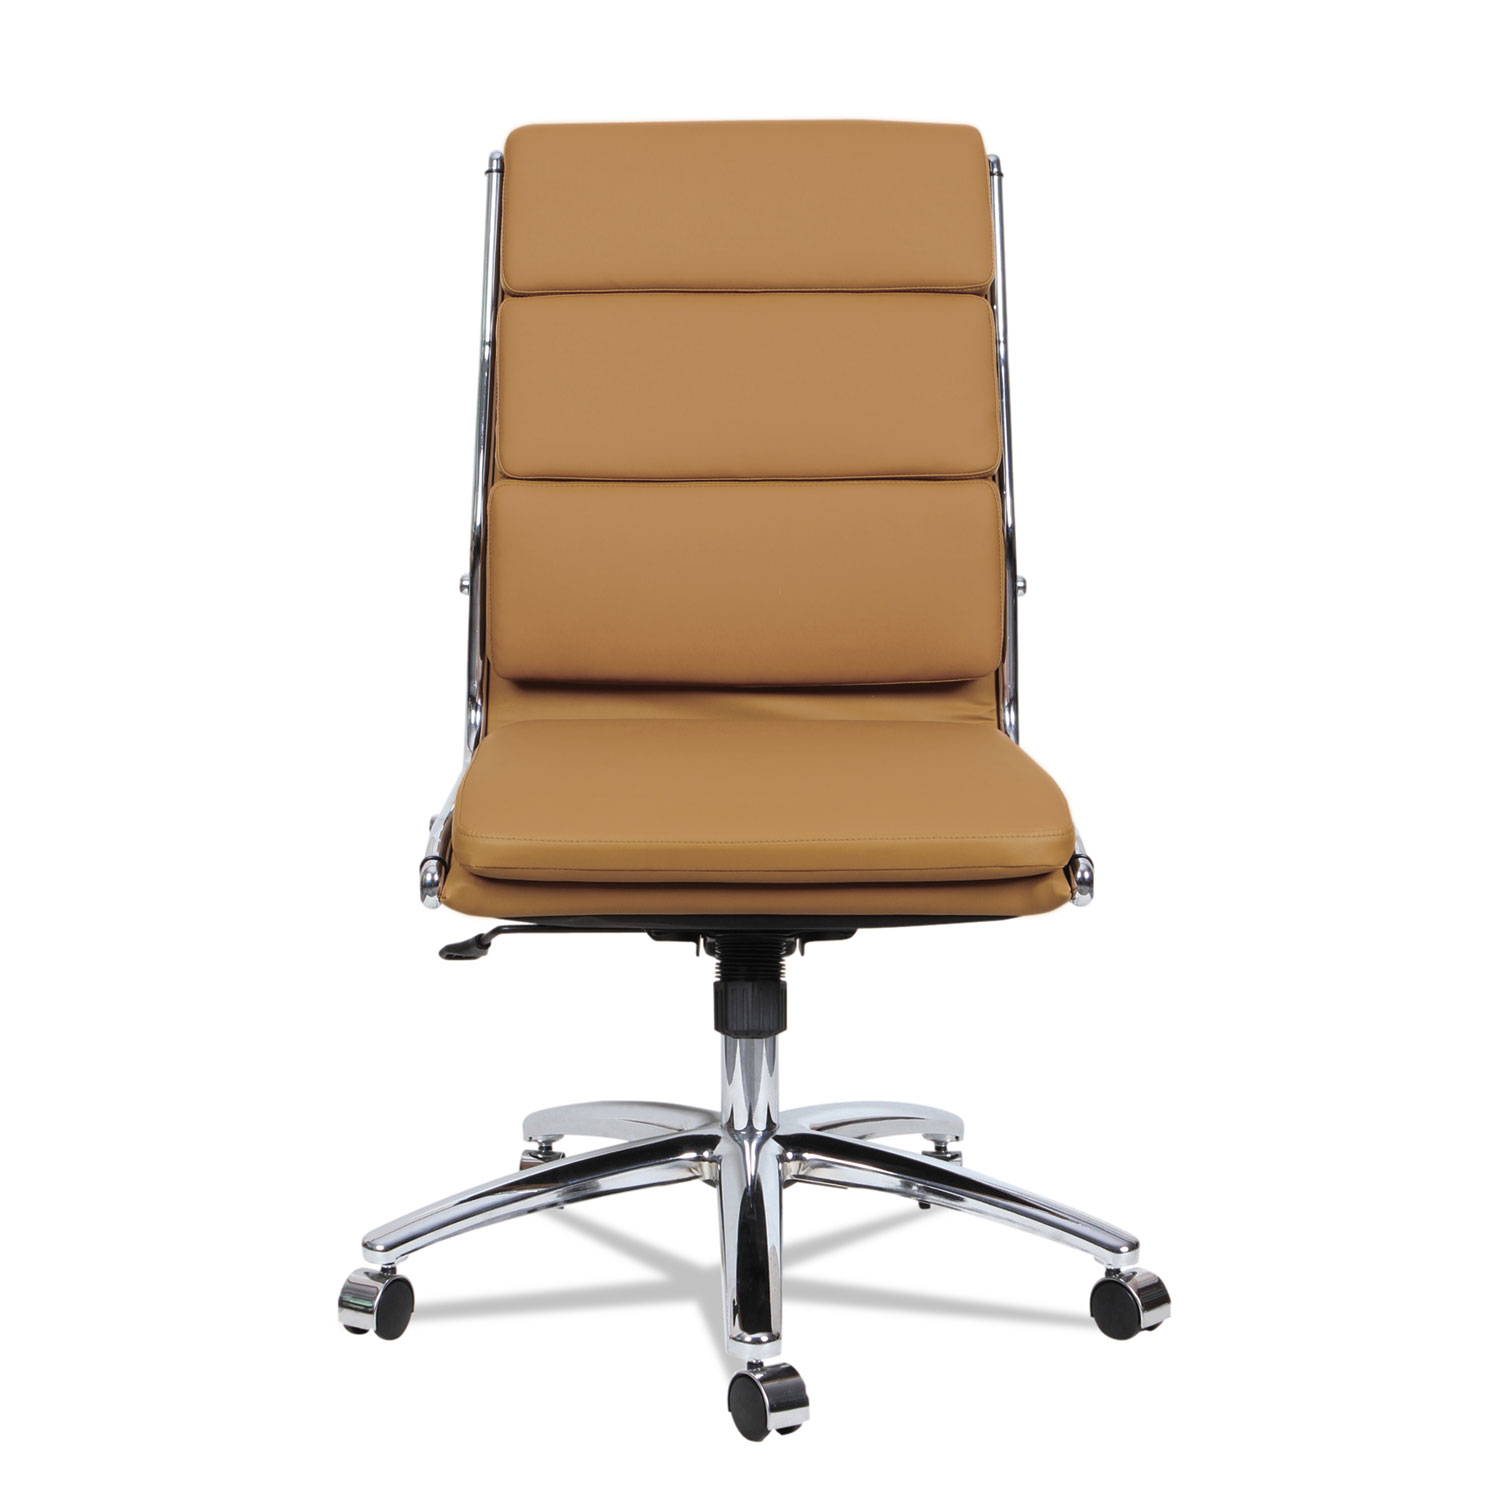 Alera Neratoli Mid Back Slim Profile Chair by Alera ALENR4259